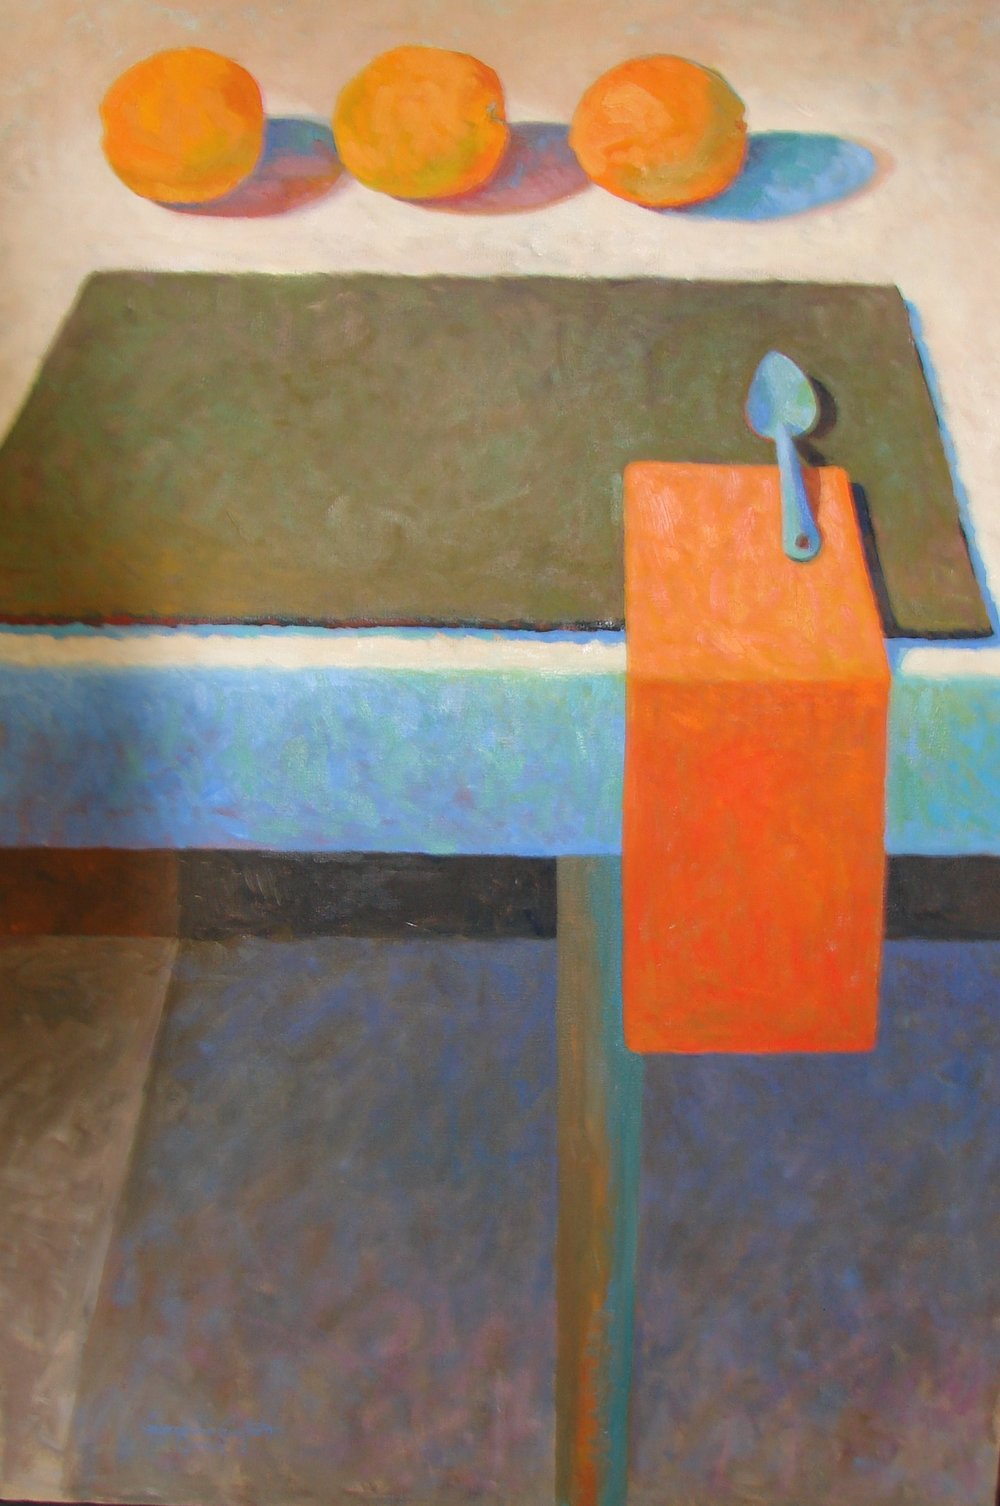 """FOUR ORANGES AND A BLUE SPOON . 32"""" x 24"""" . OIL ON CANVAS"""